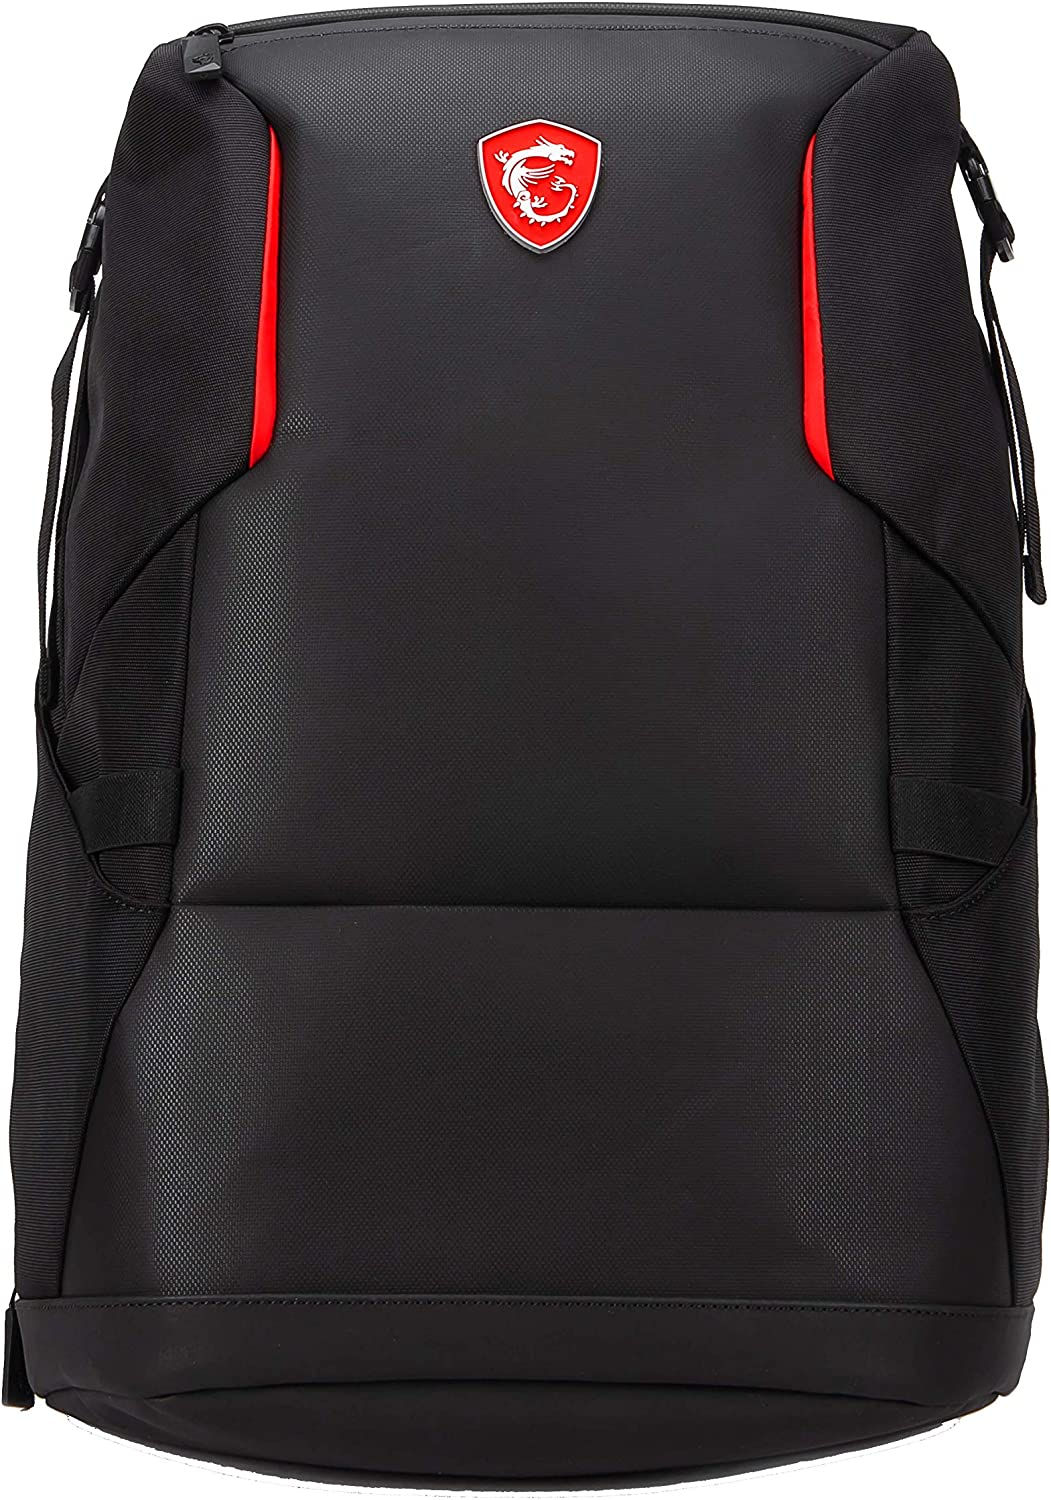 "MSI Urban Raider Gaming Laptop Backpack, Quick Access, Padded Mesh, Lightweight Polyester Exterior, Fits Up to 17"" Laptop, Water Repelent IPX-2, Medium"